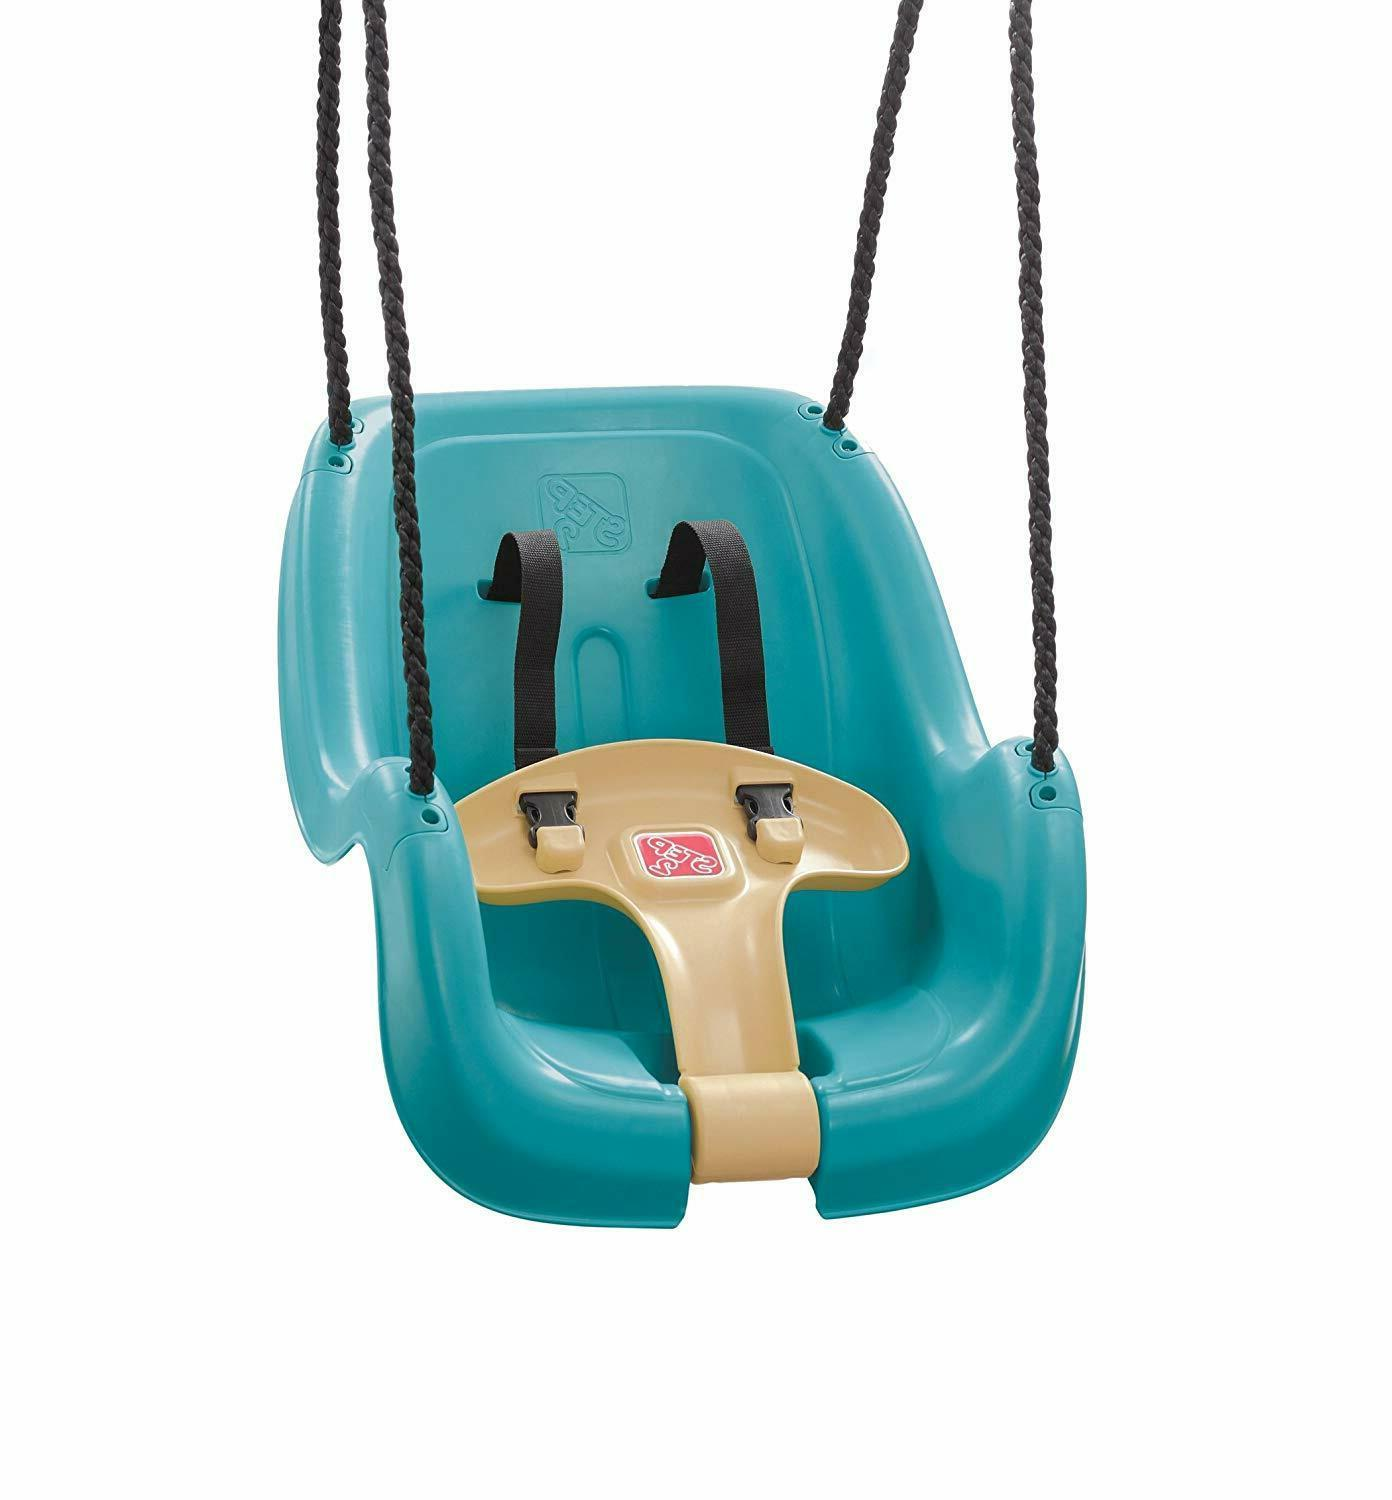 new opened box infant to toddler swing